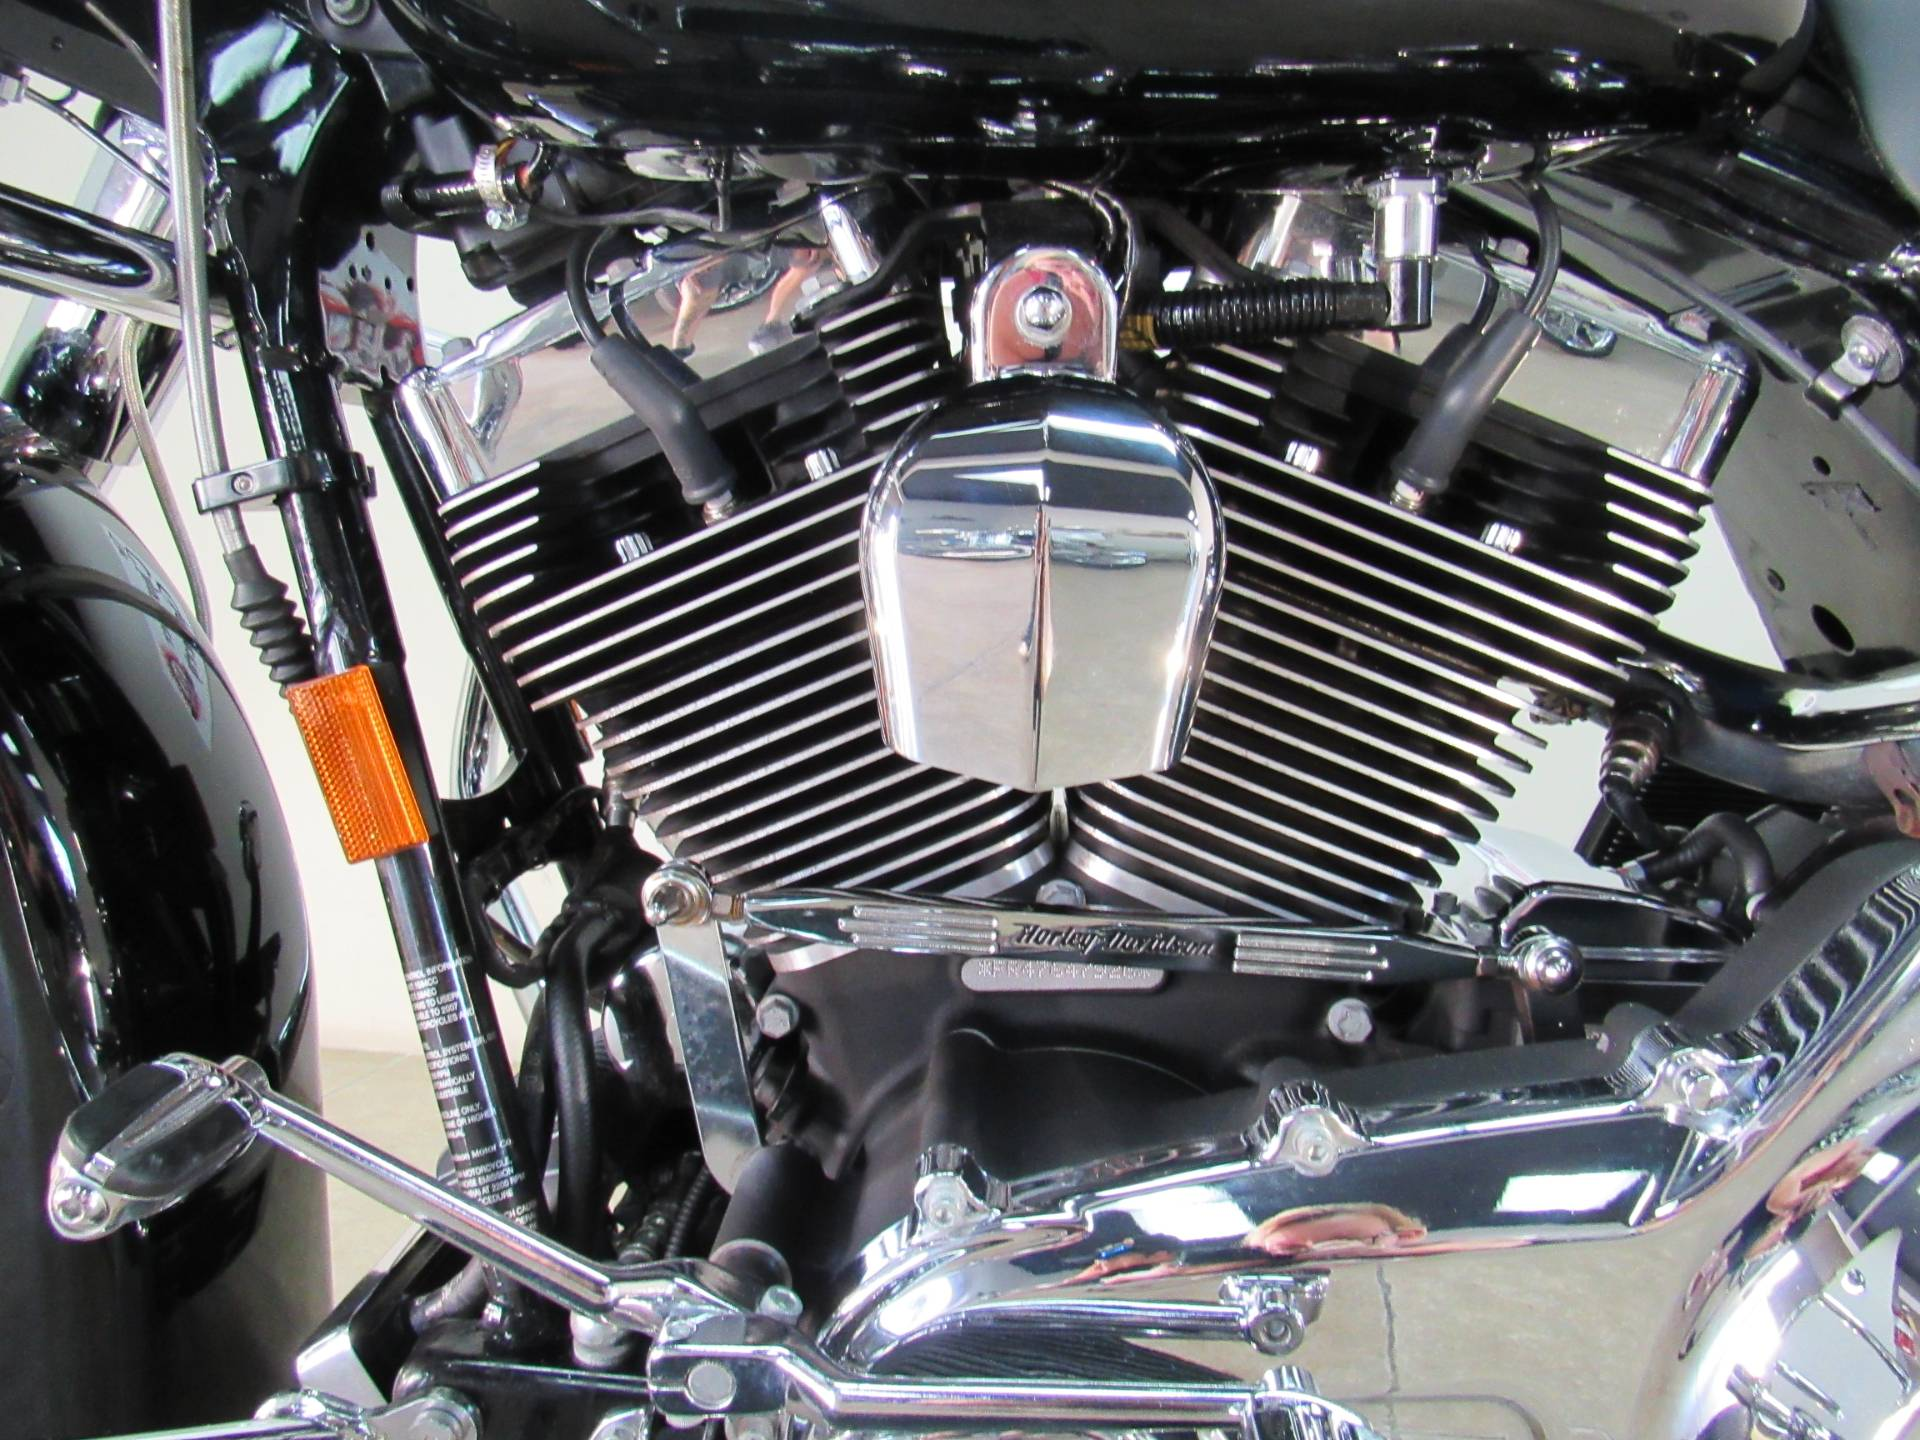 2007 Harley-Davidson FLHRC Road King® Classic in Temecula, California - Photo 22